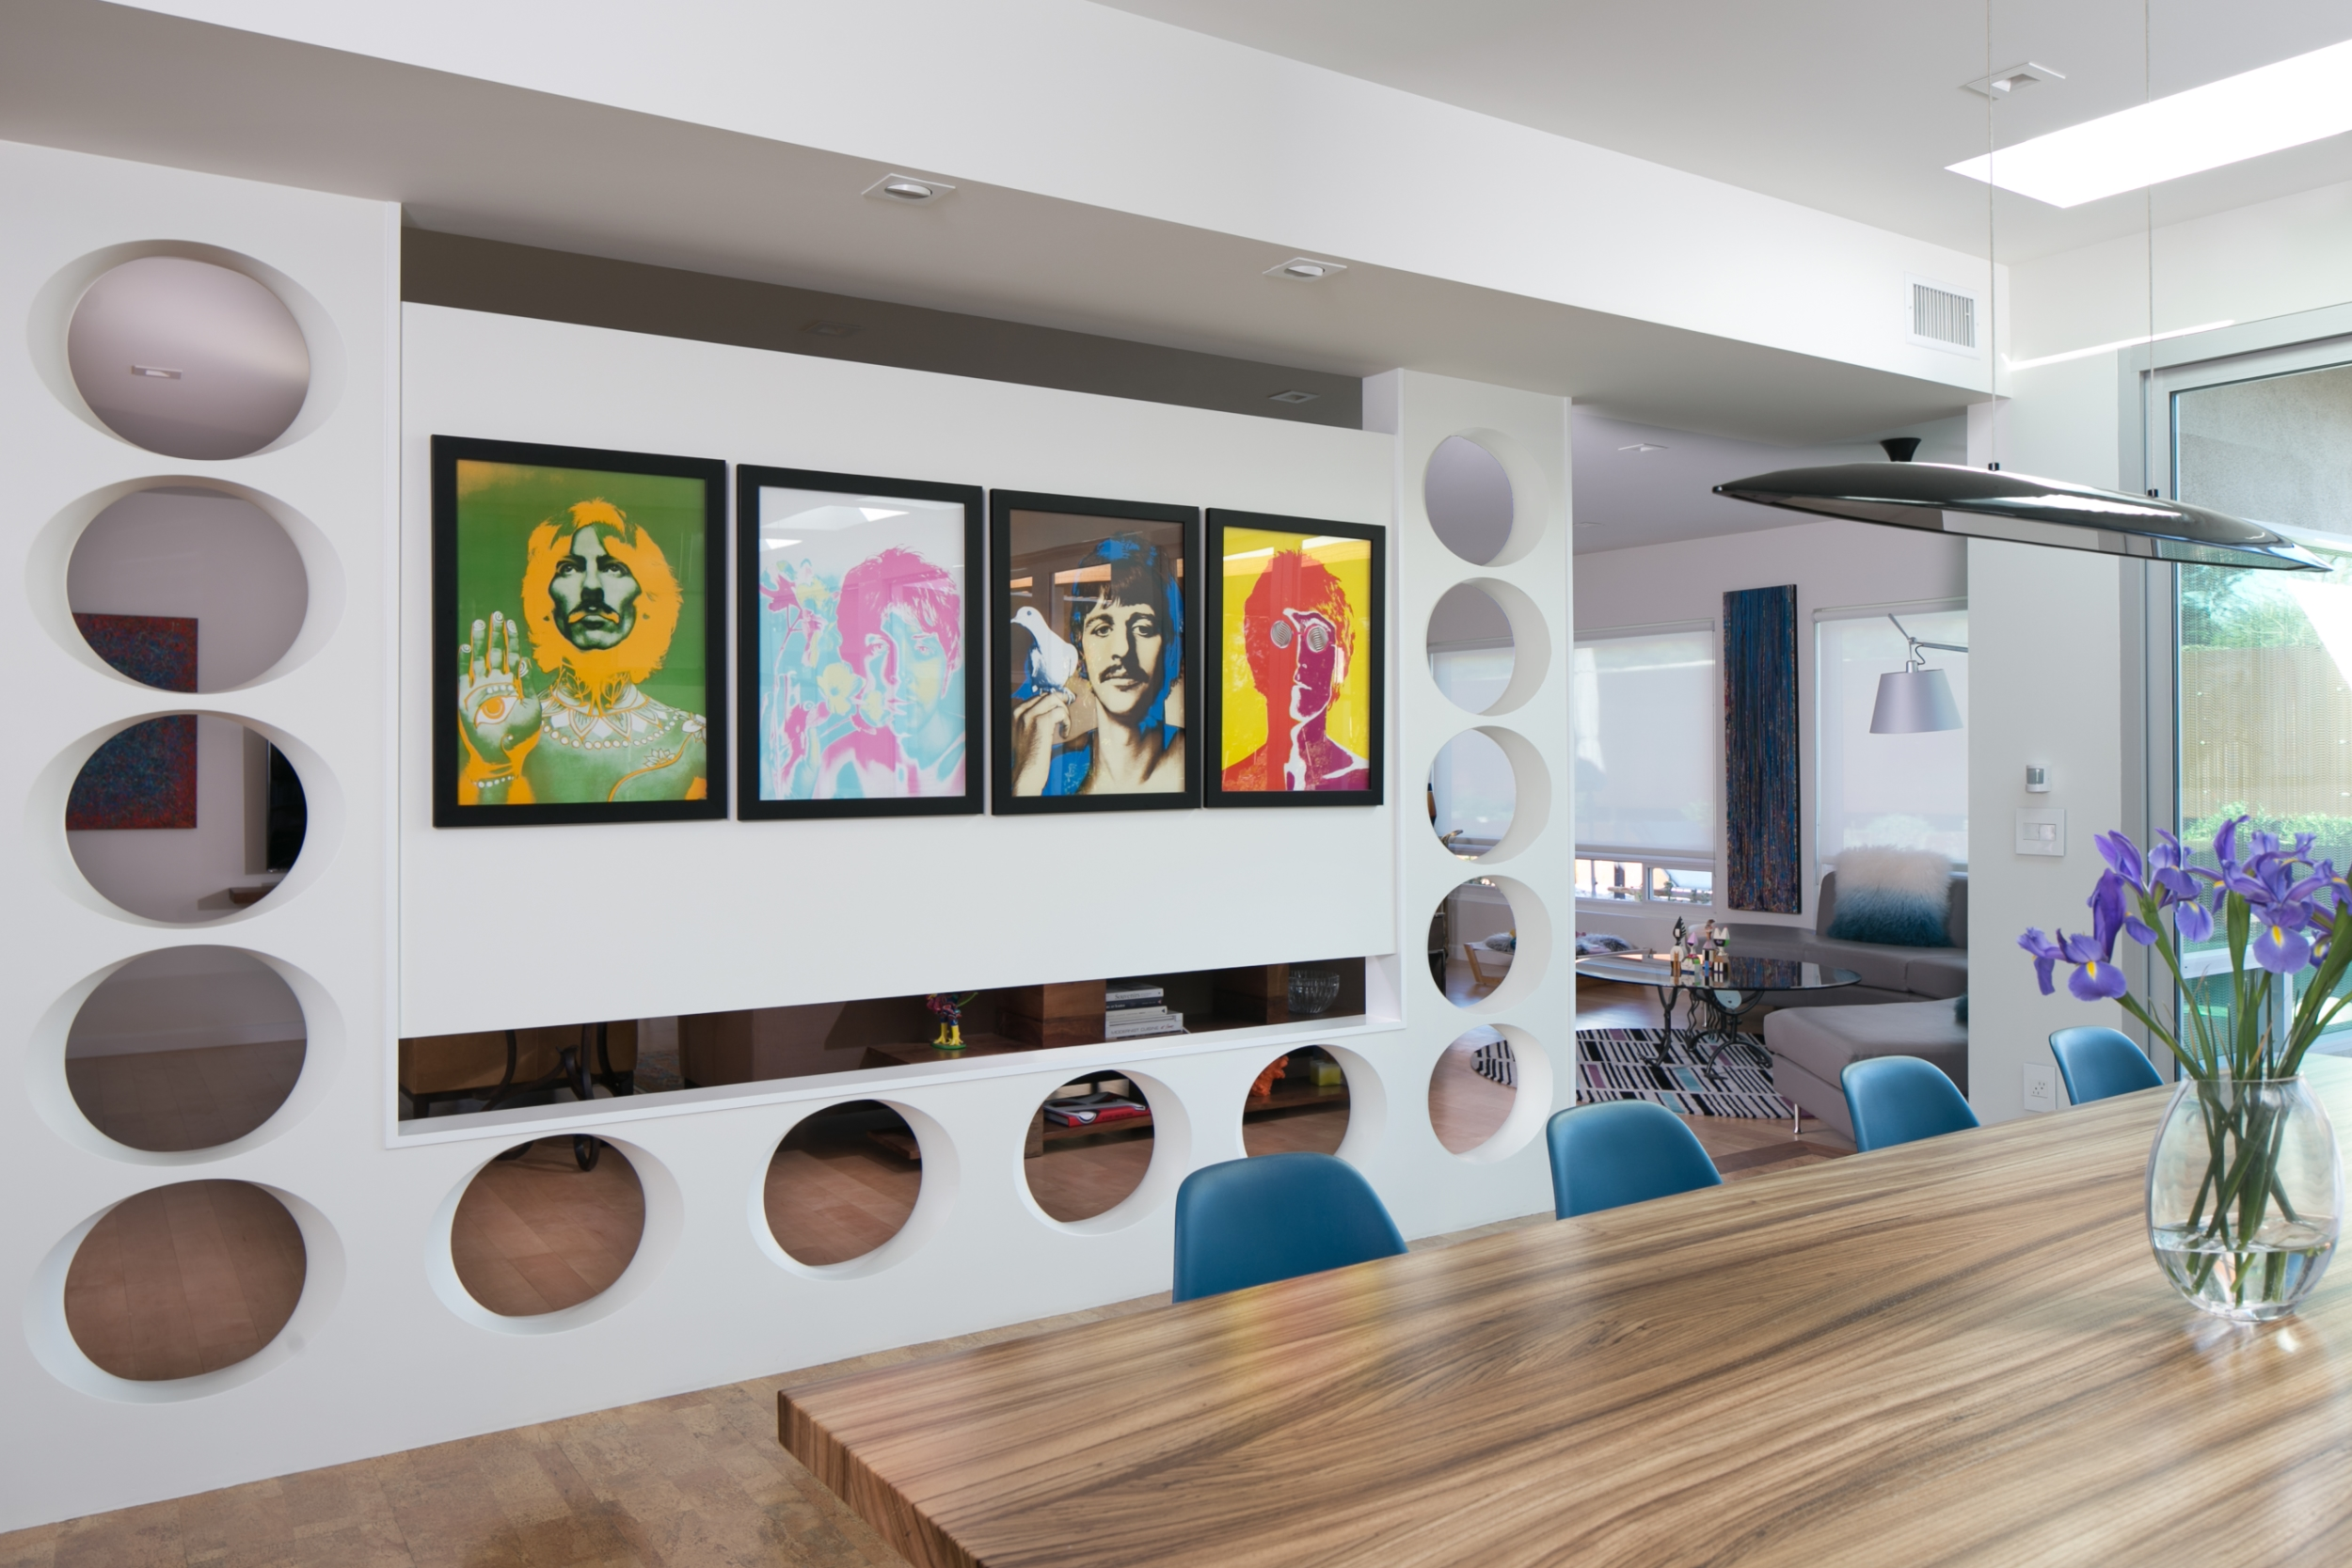 This mid-century modern dining room art wall with prints of the Beatles allows for privacy while keeping an open feel